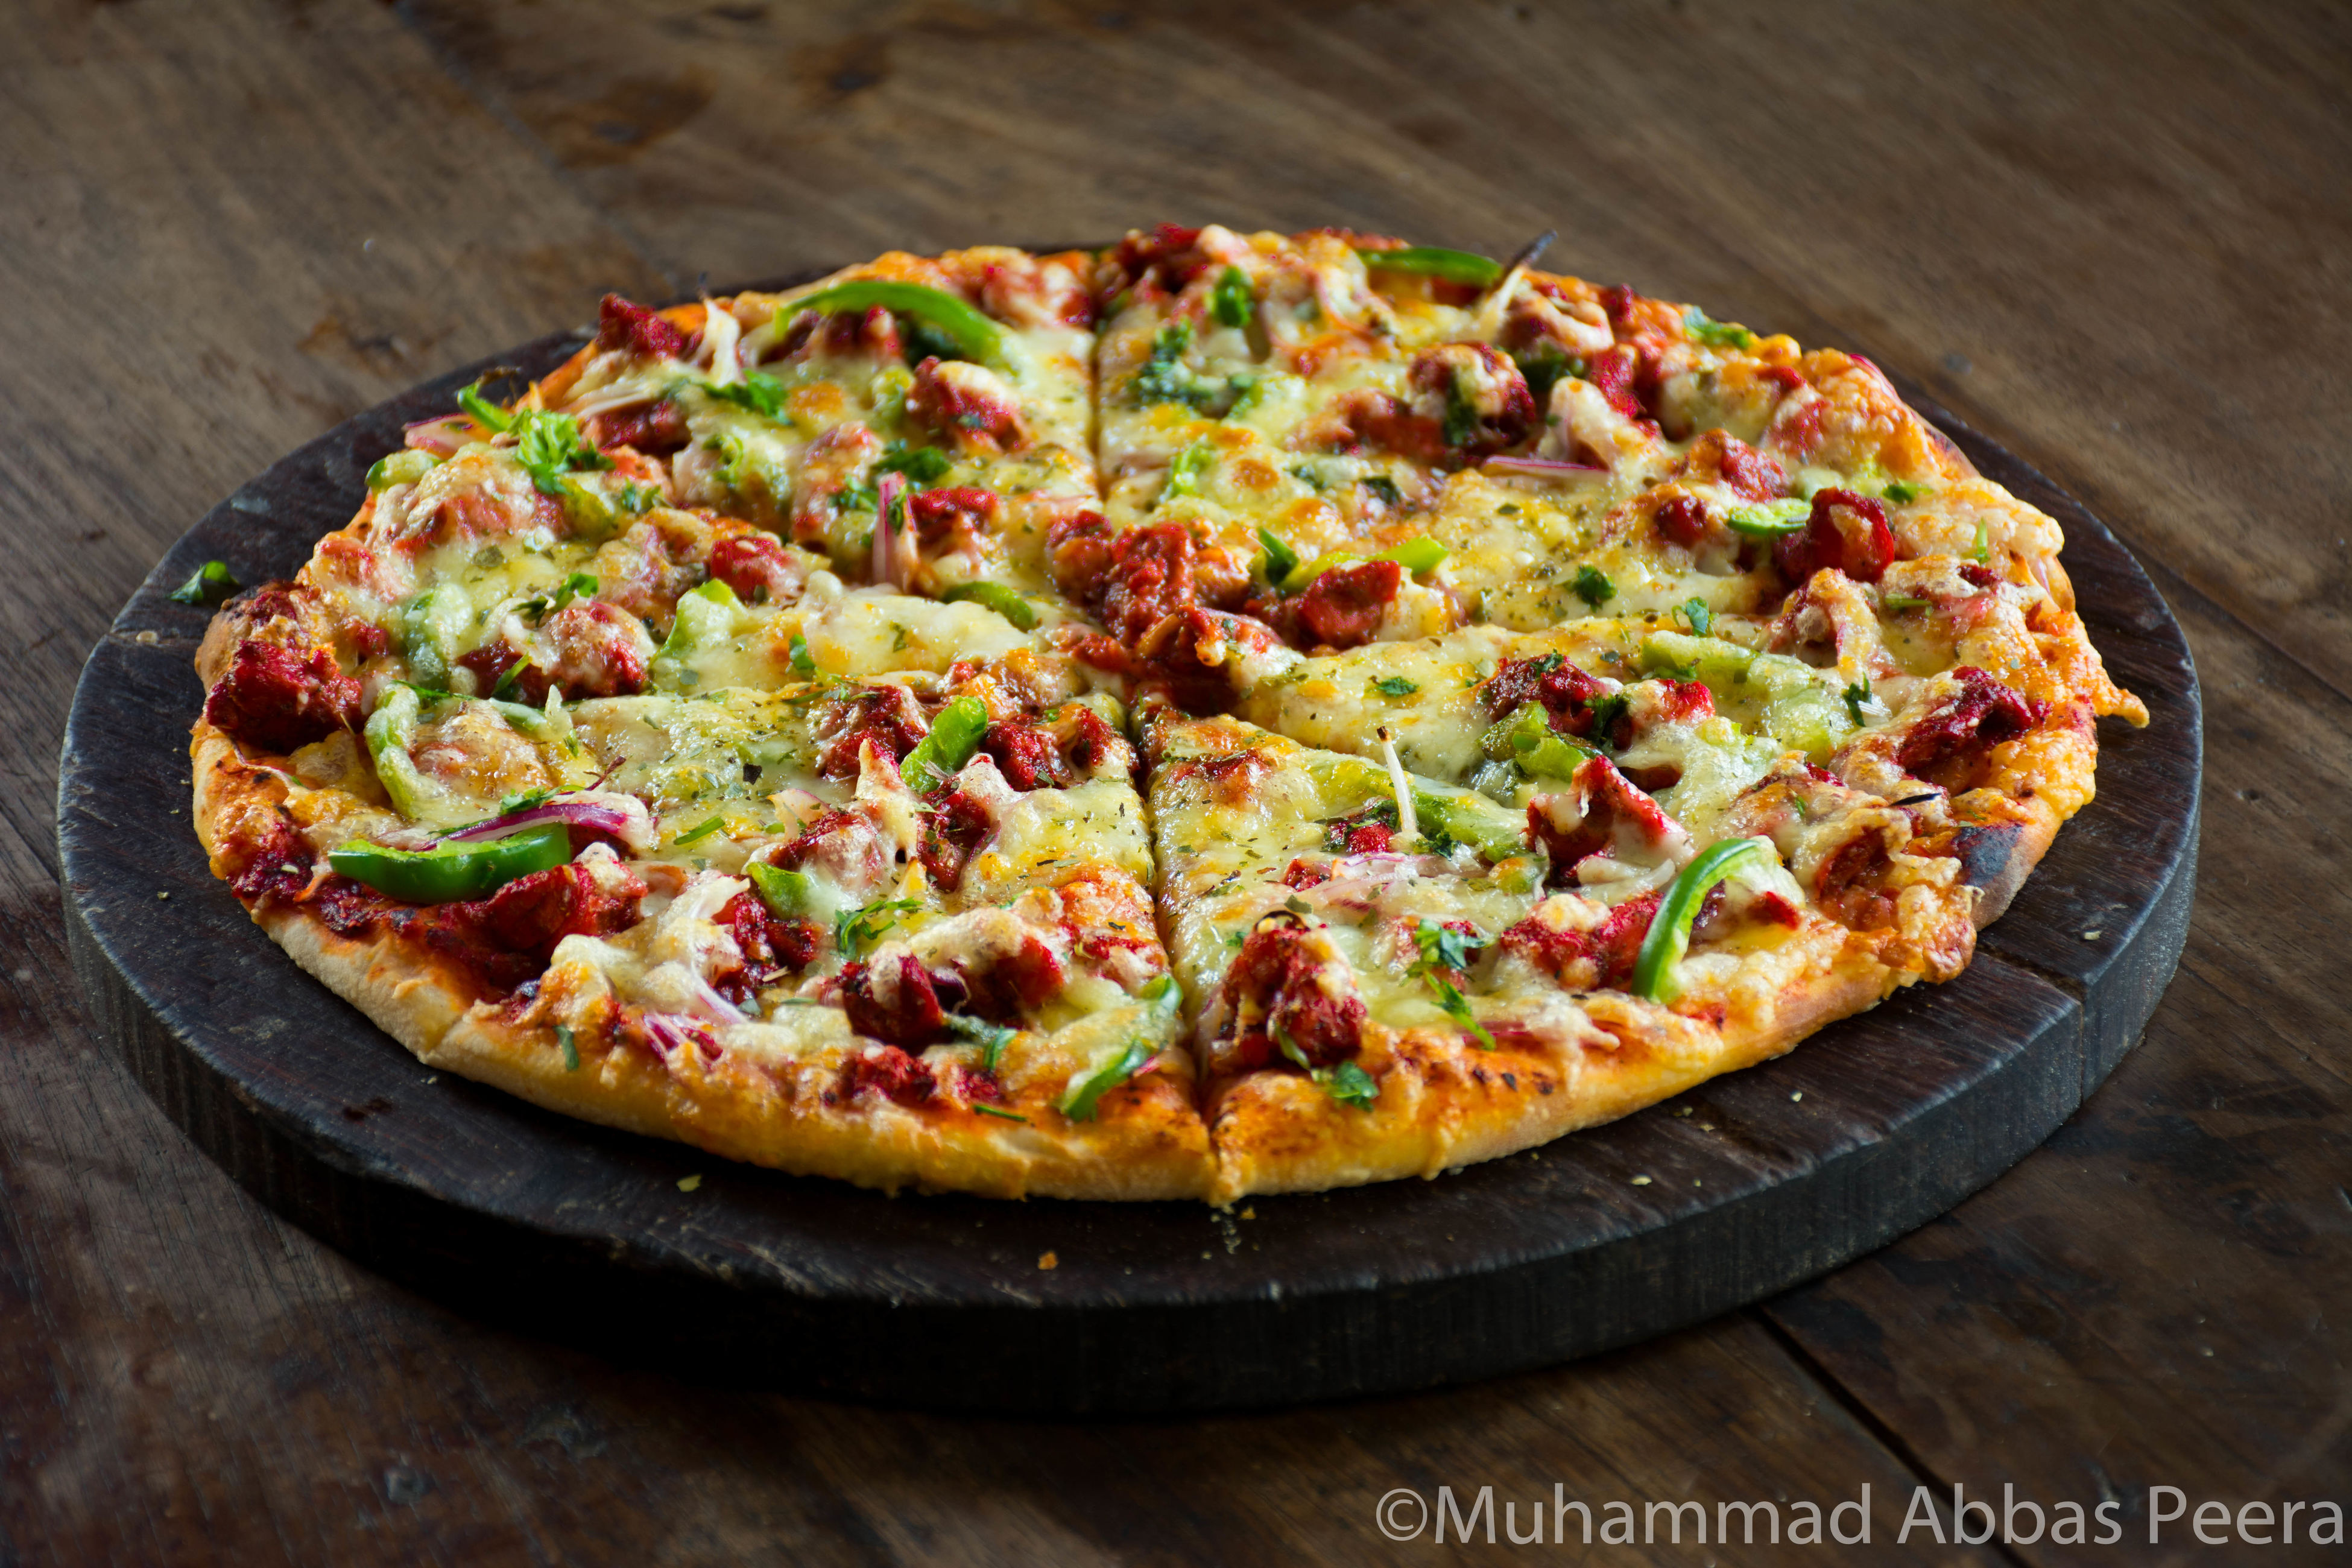 food, pizza, food and drink, table, indoors, high angle view, wood - material, no people, freshness, italian food, vegetable, cheese, ready-to-eat, homemade, plate, studio shot, vegetarian food, close-up, day